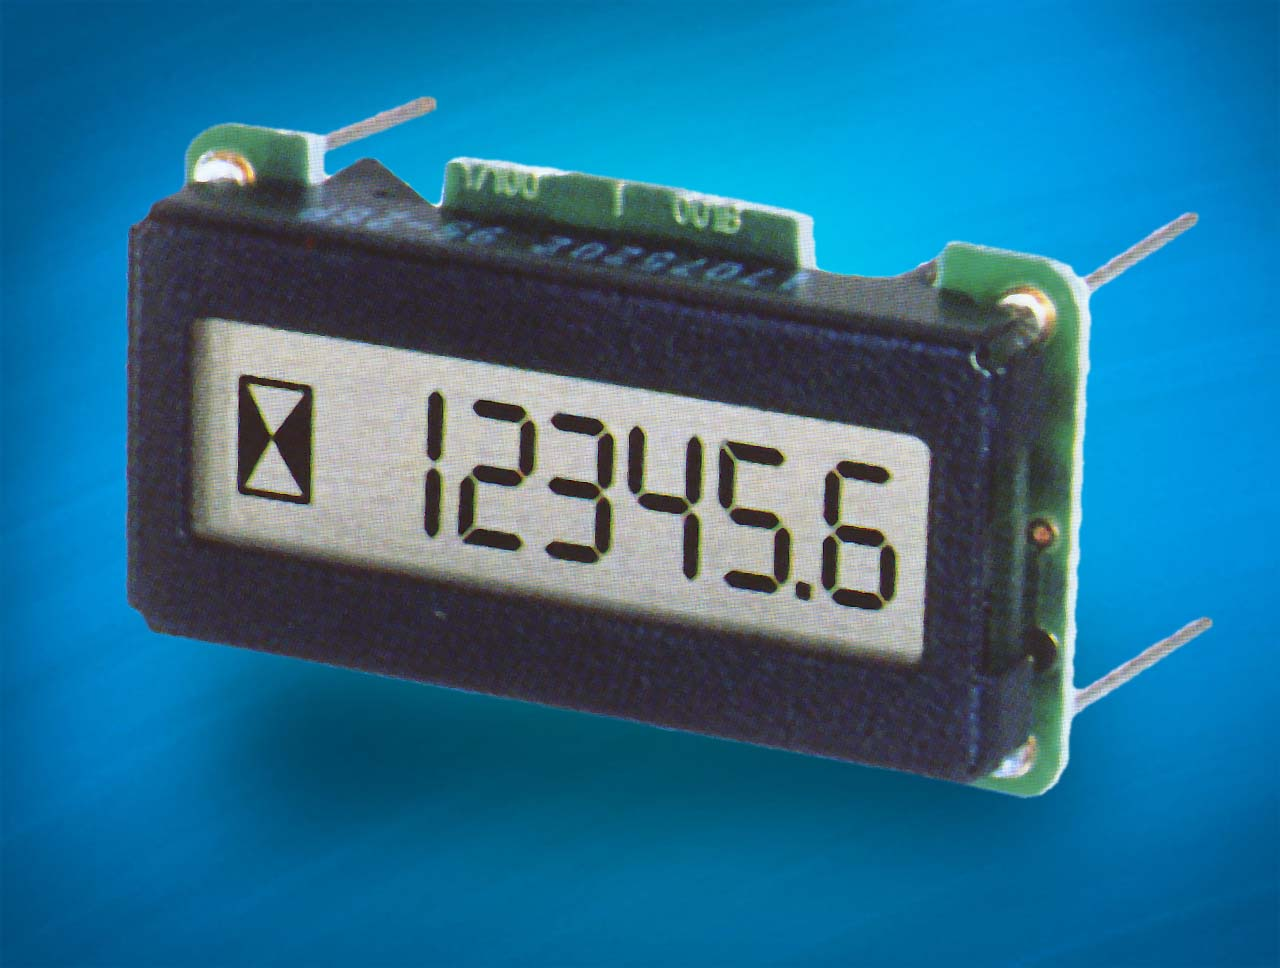 EA 2070: 6 digit counter with EEPROM